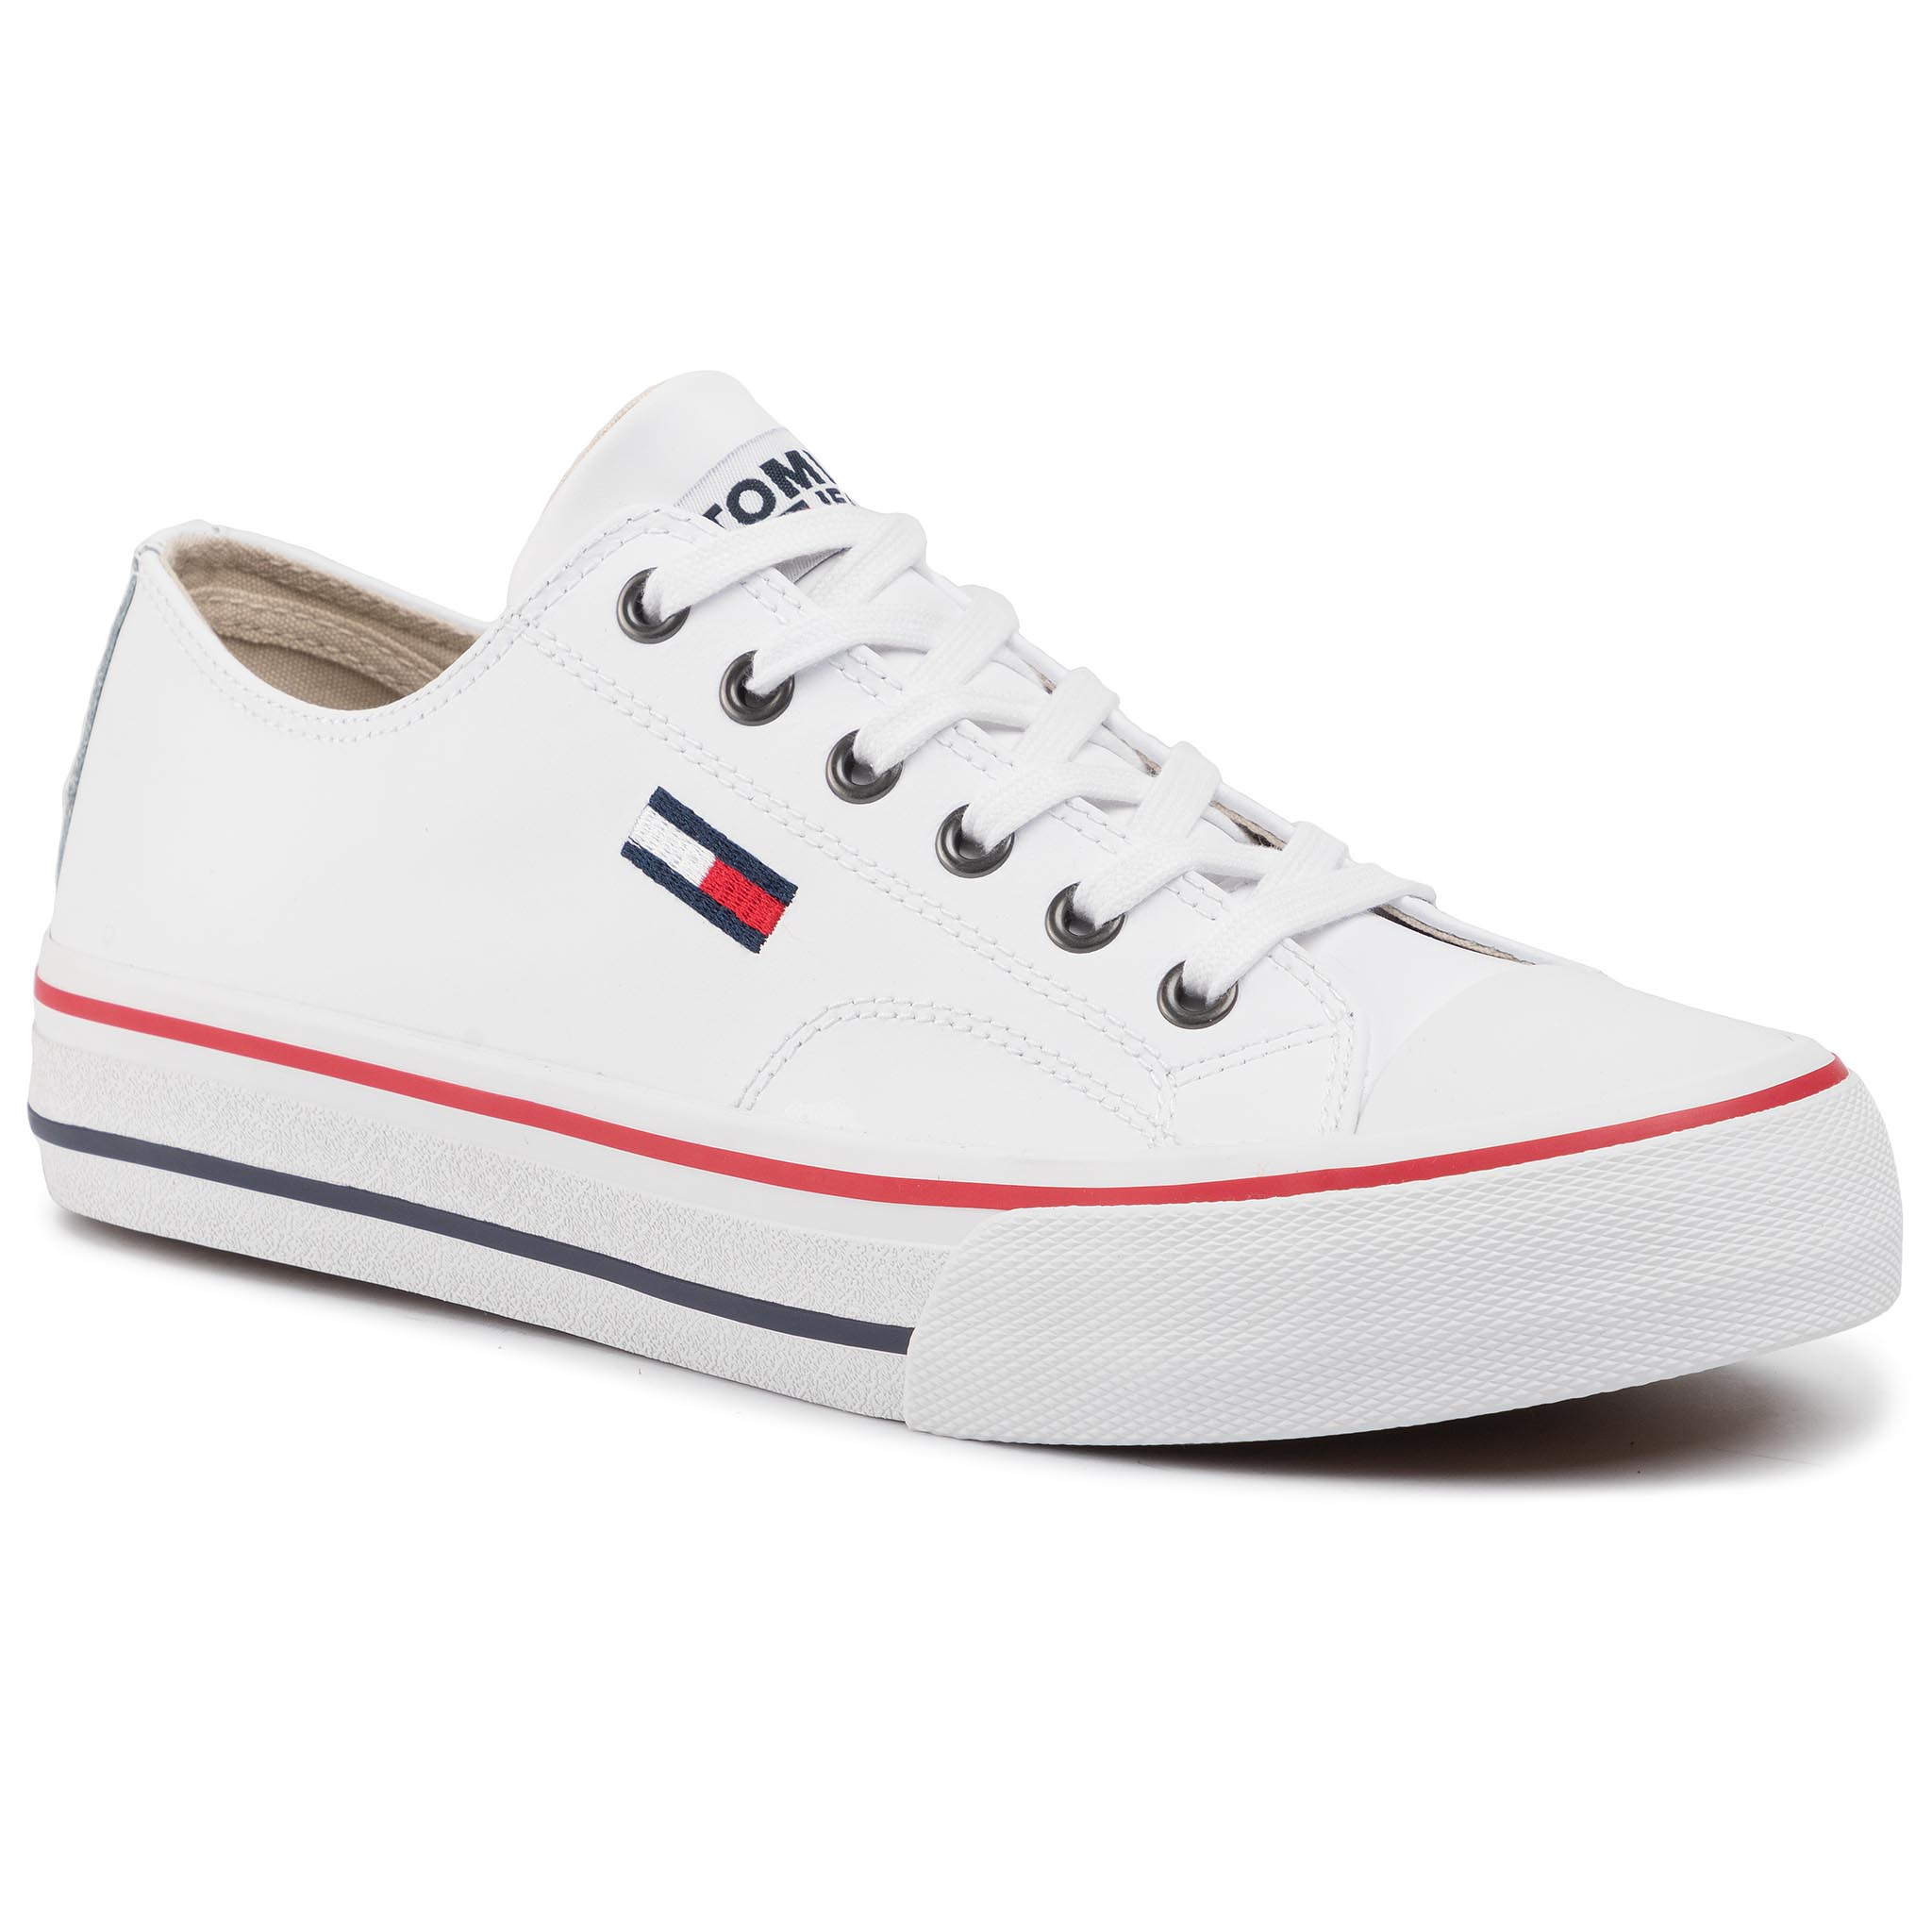 Teniși TOMMY JEANS - Leather City Sneaker EM0EM00394 White Ybs